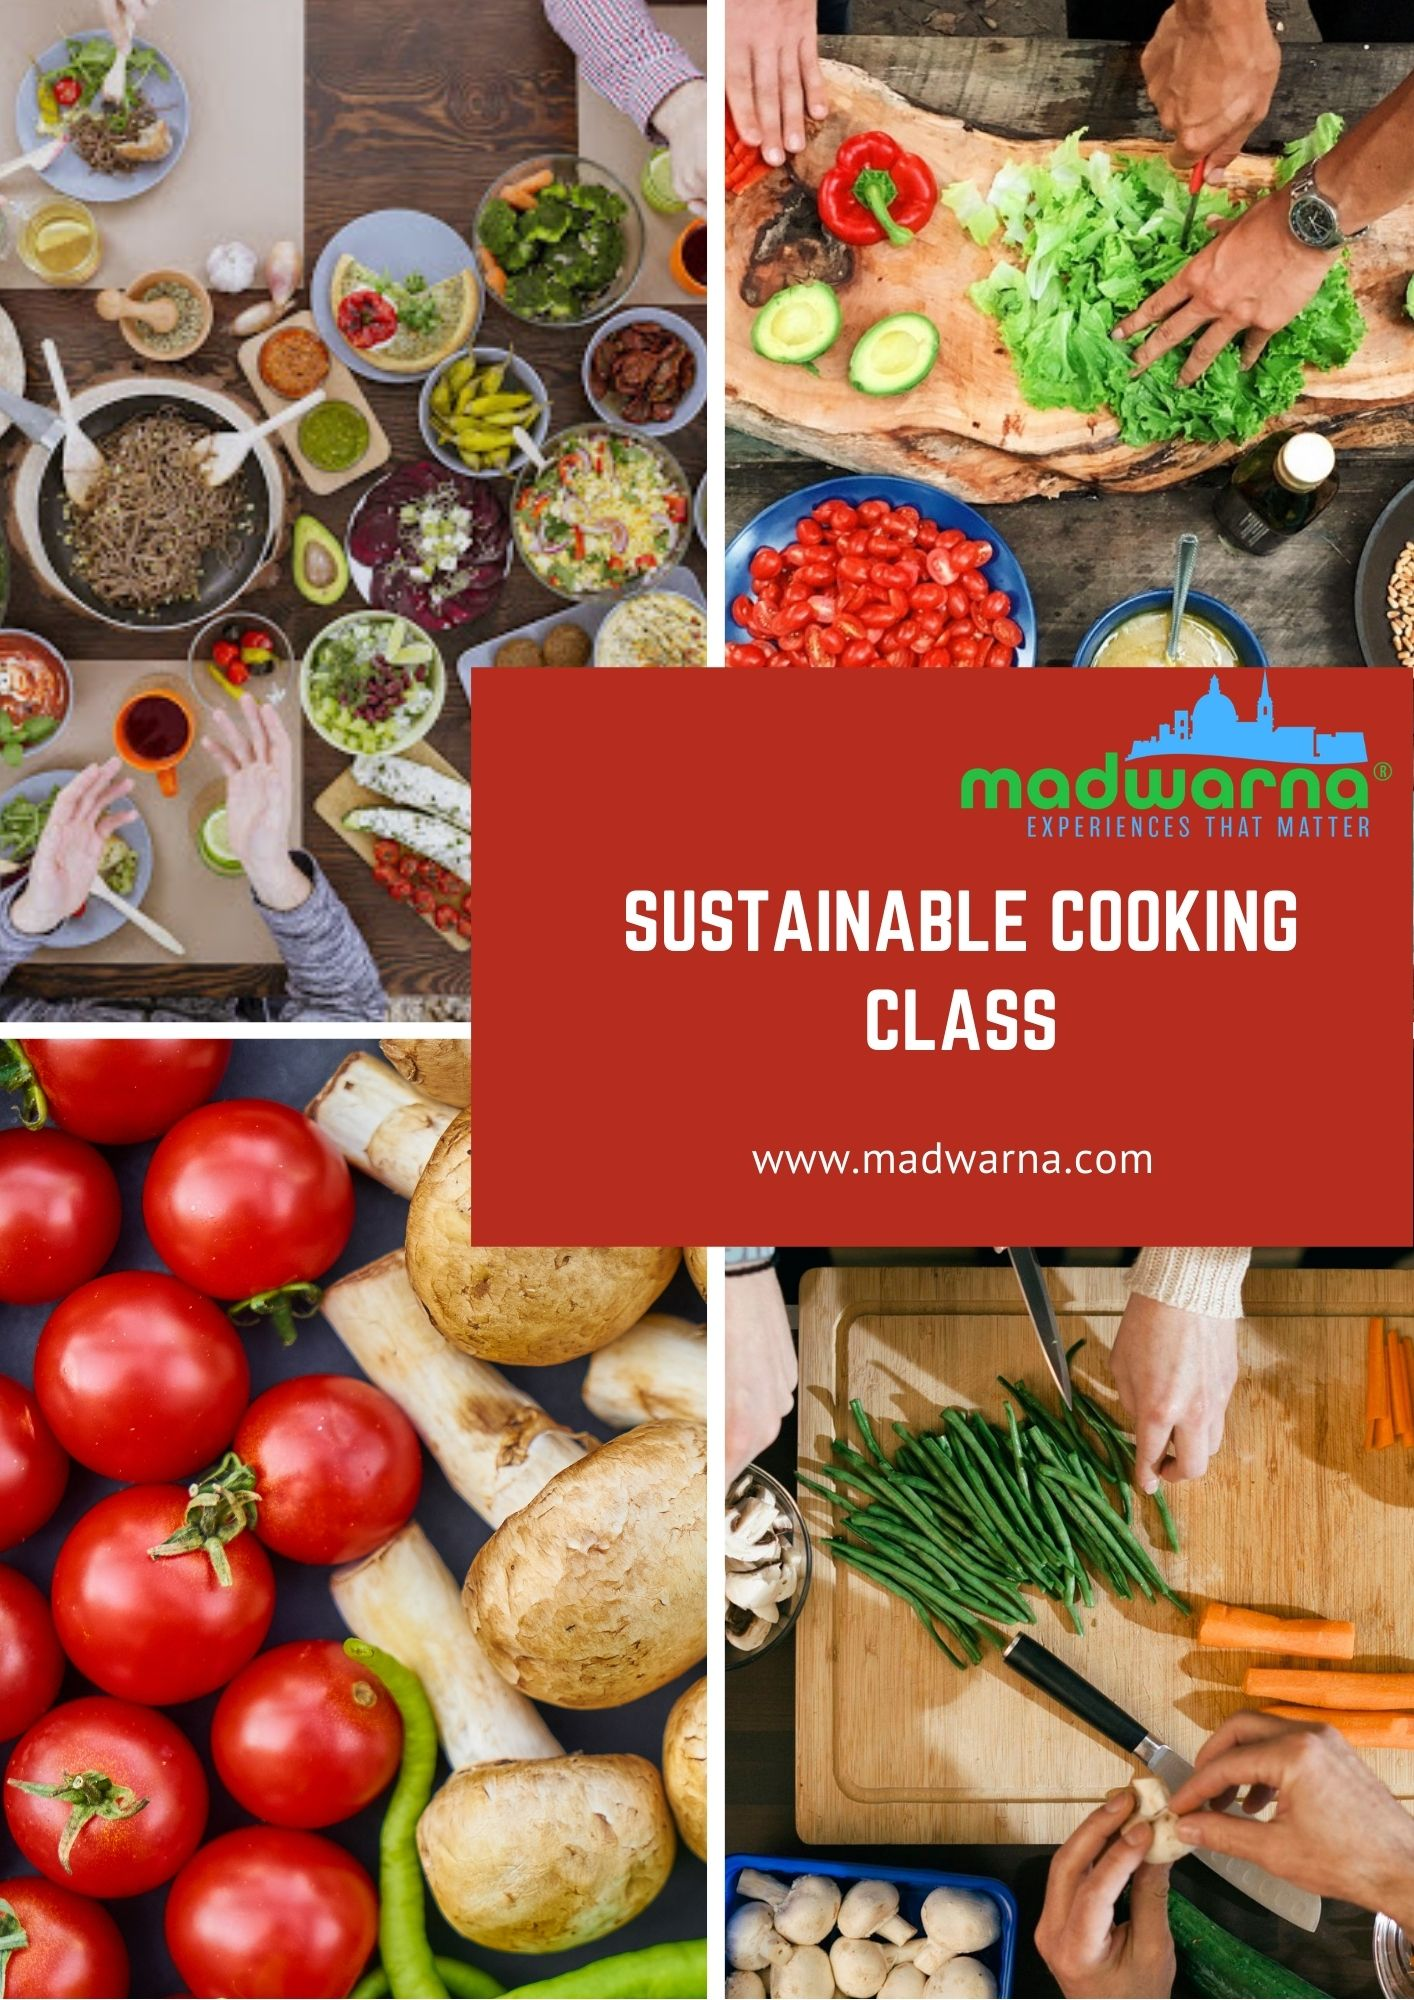 Sustainable cooking class poster